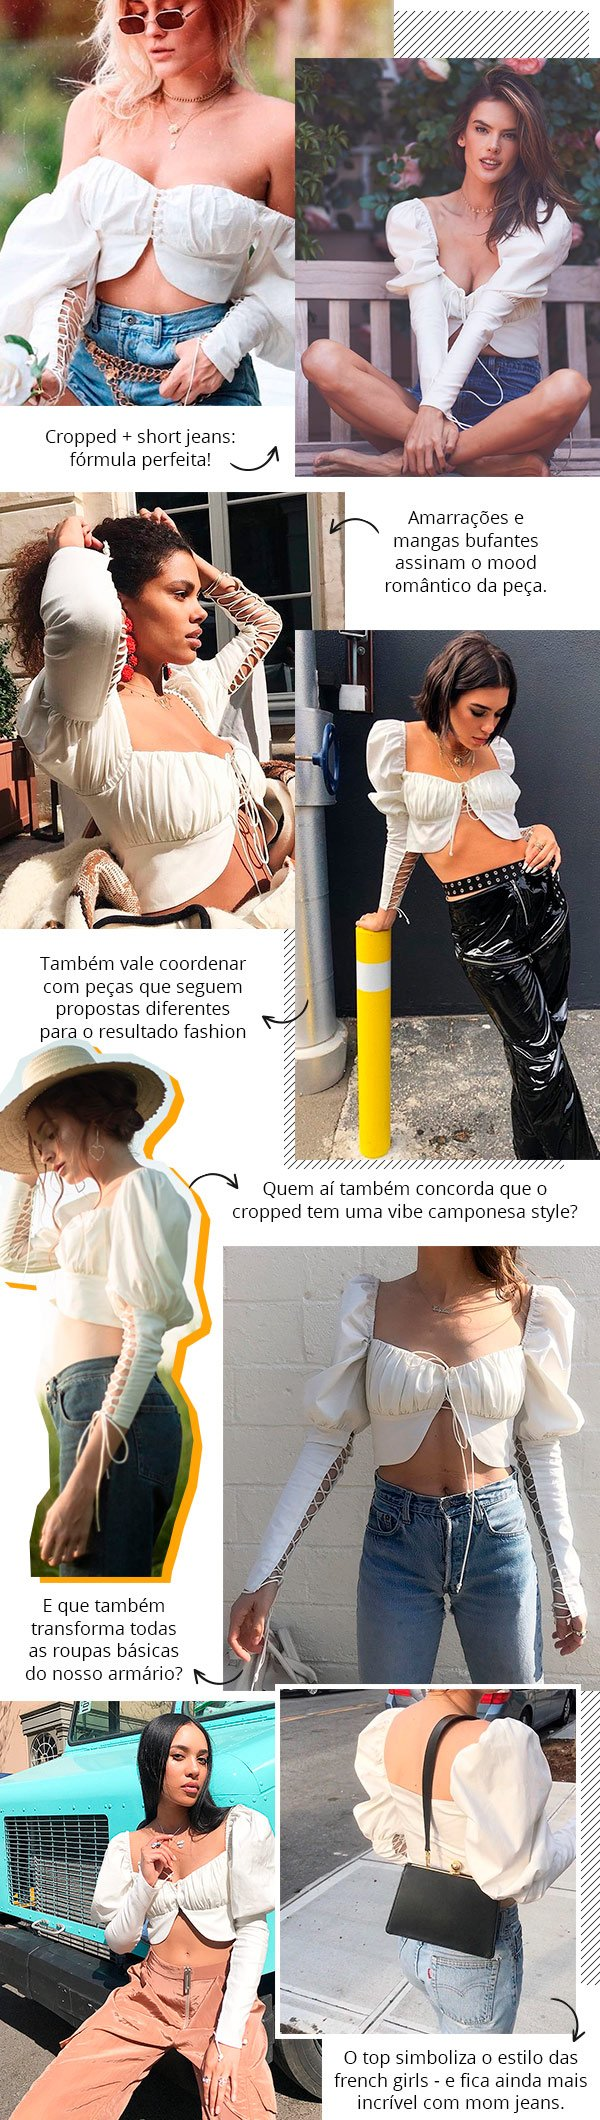 cropped - look - trend - ourseind iris - comprar